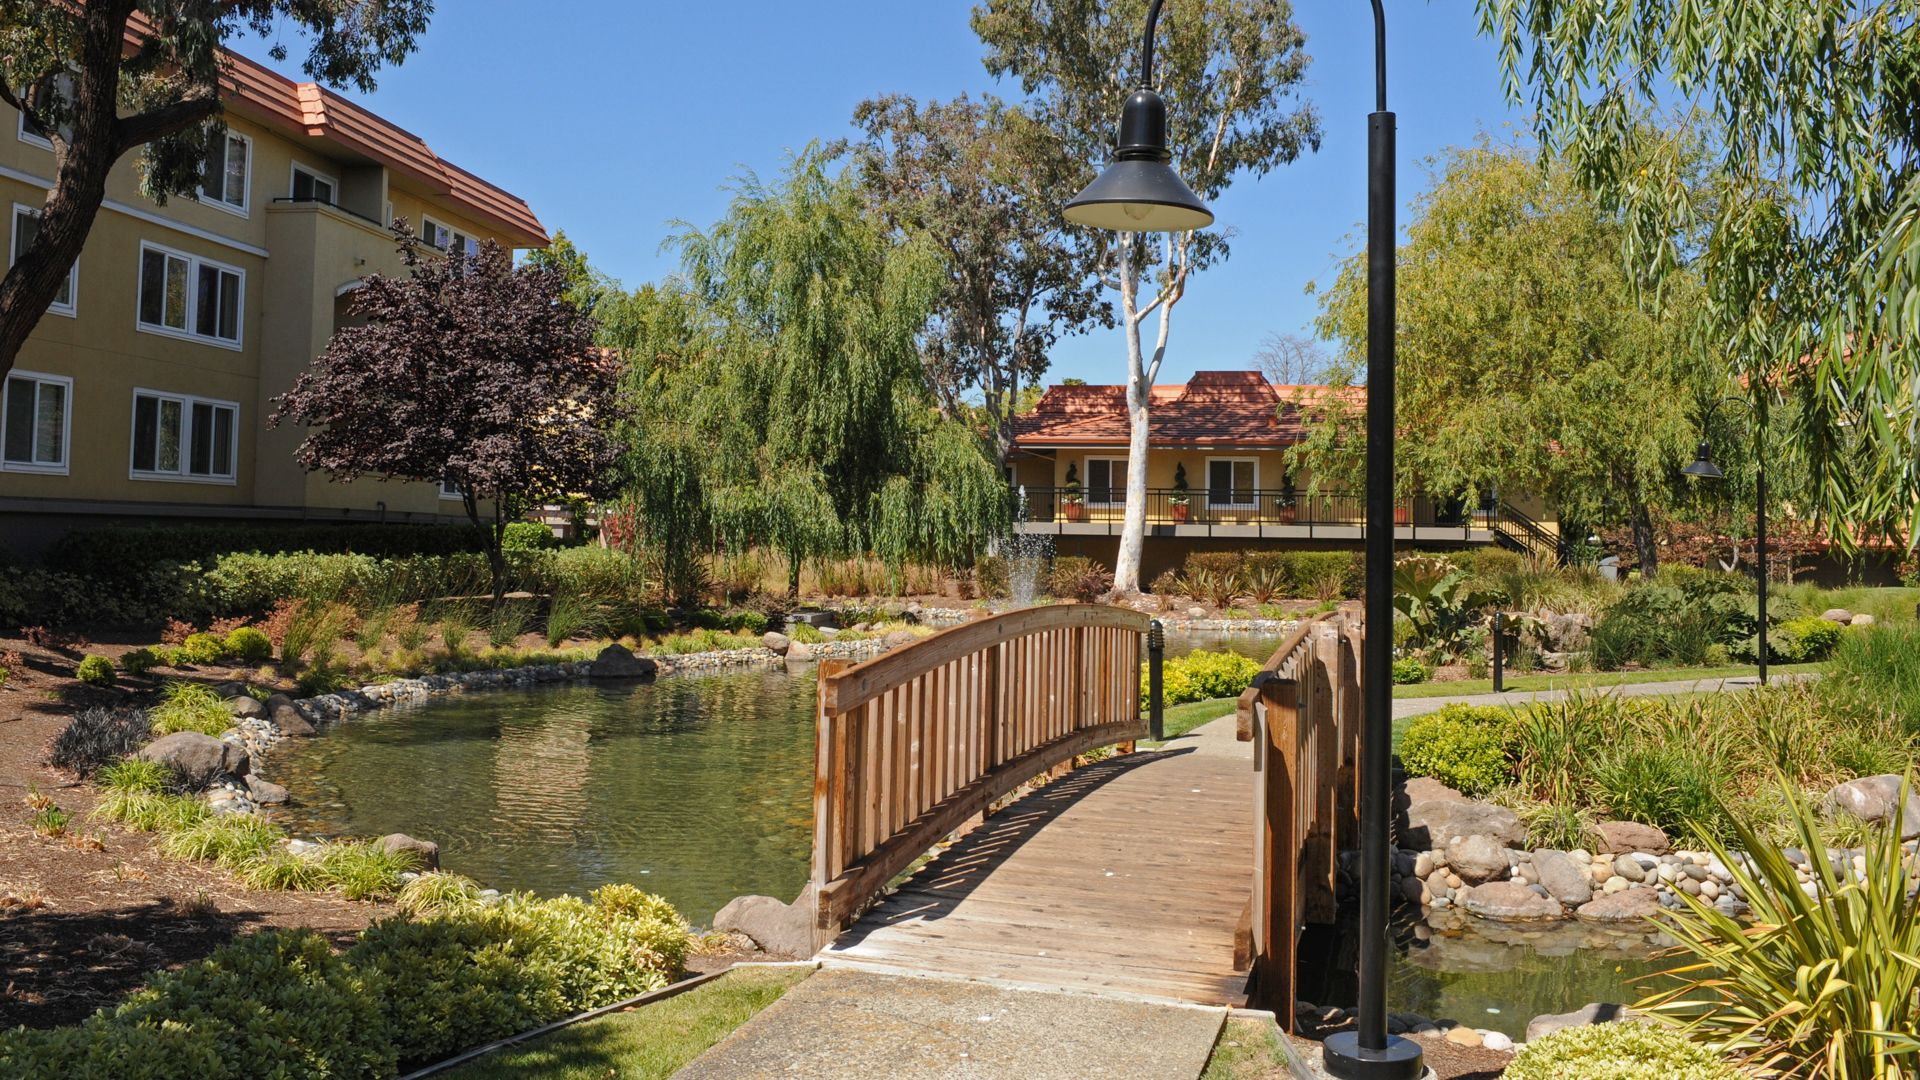 Northpark Apartments - Pond